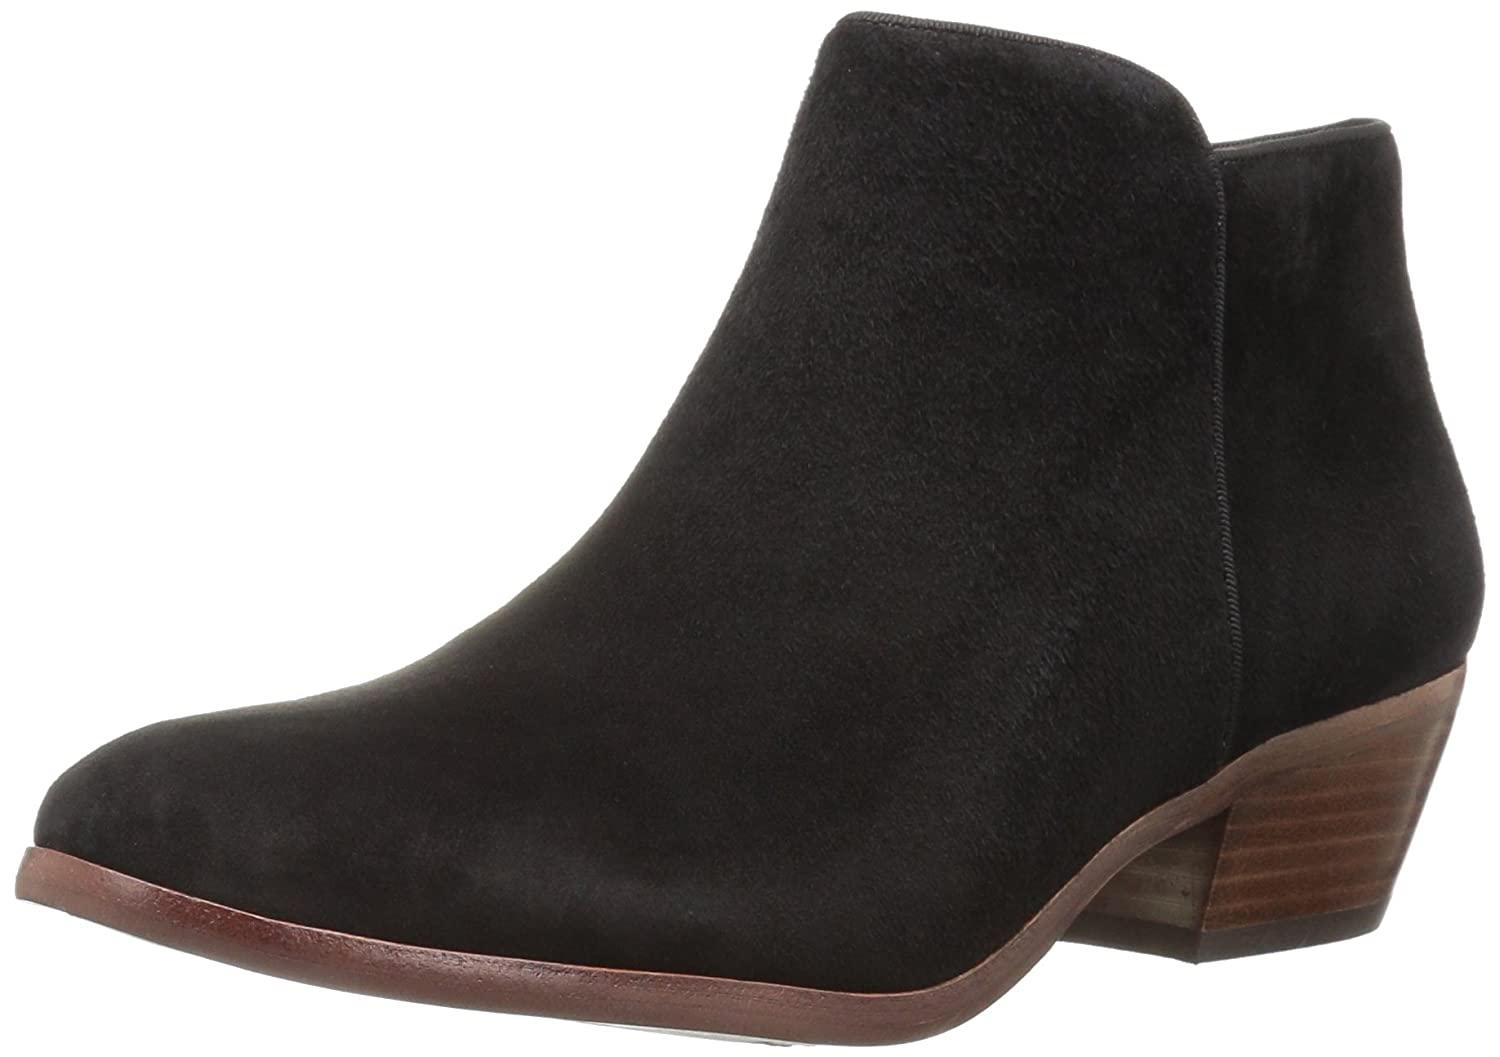 Sam Edelman Women's Petty Ankle Boot B018HL1ZCK 8.5 W US|Black Suede